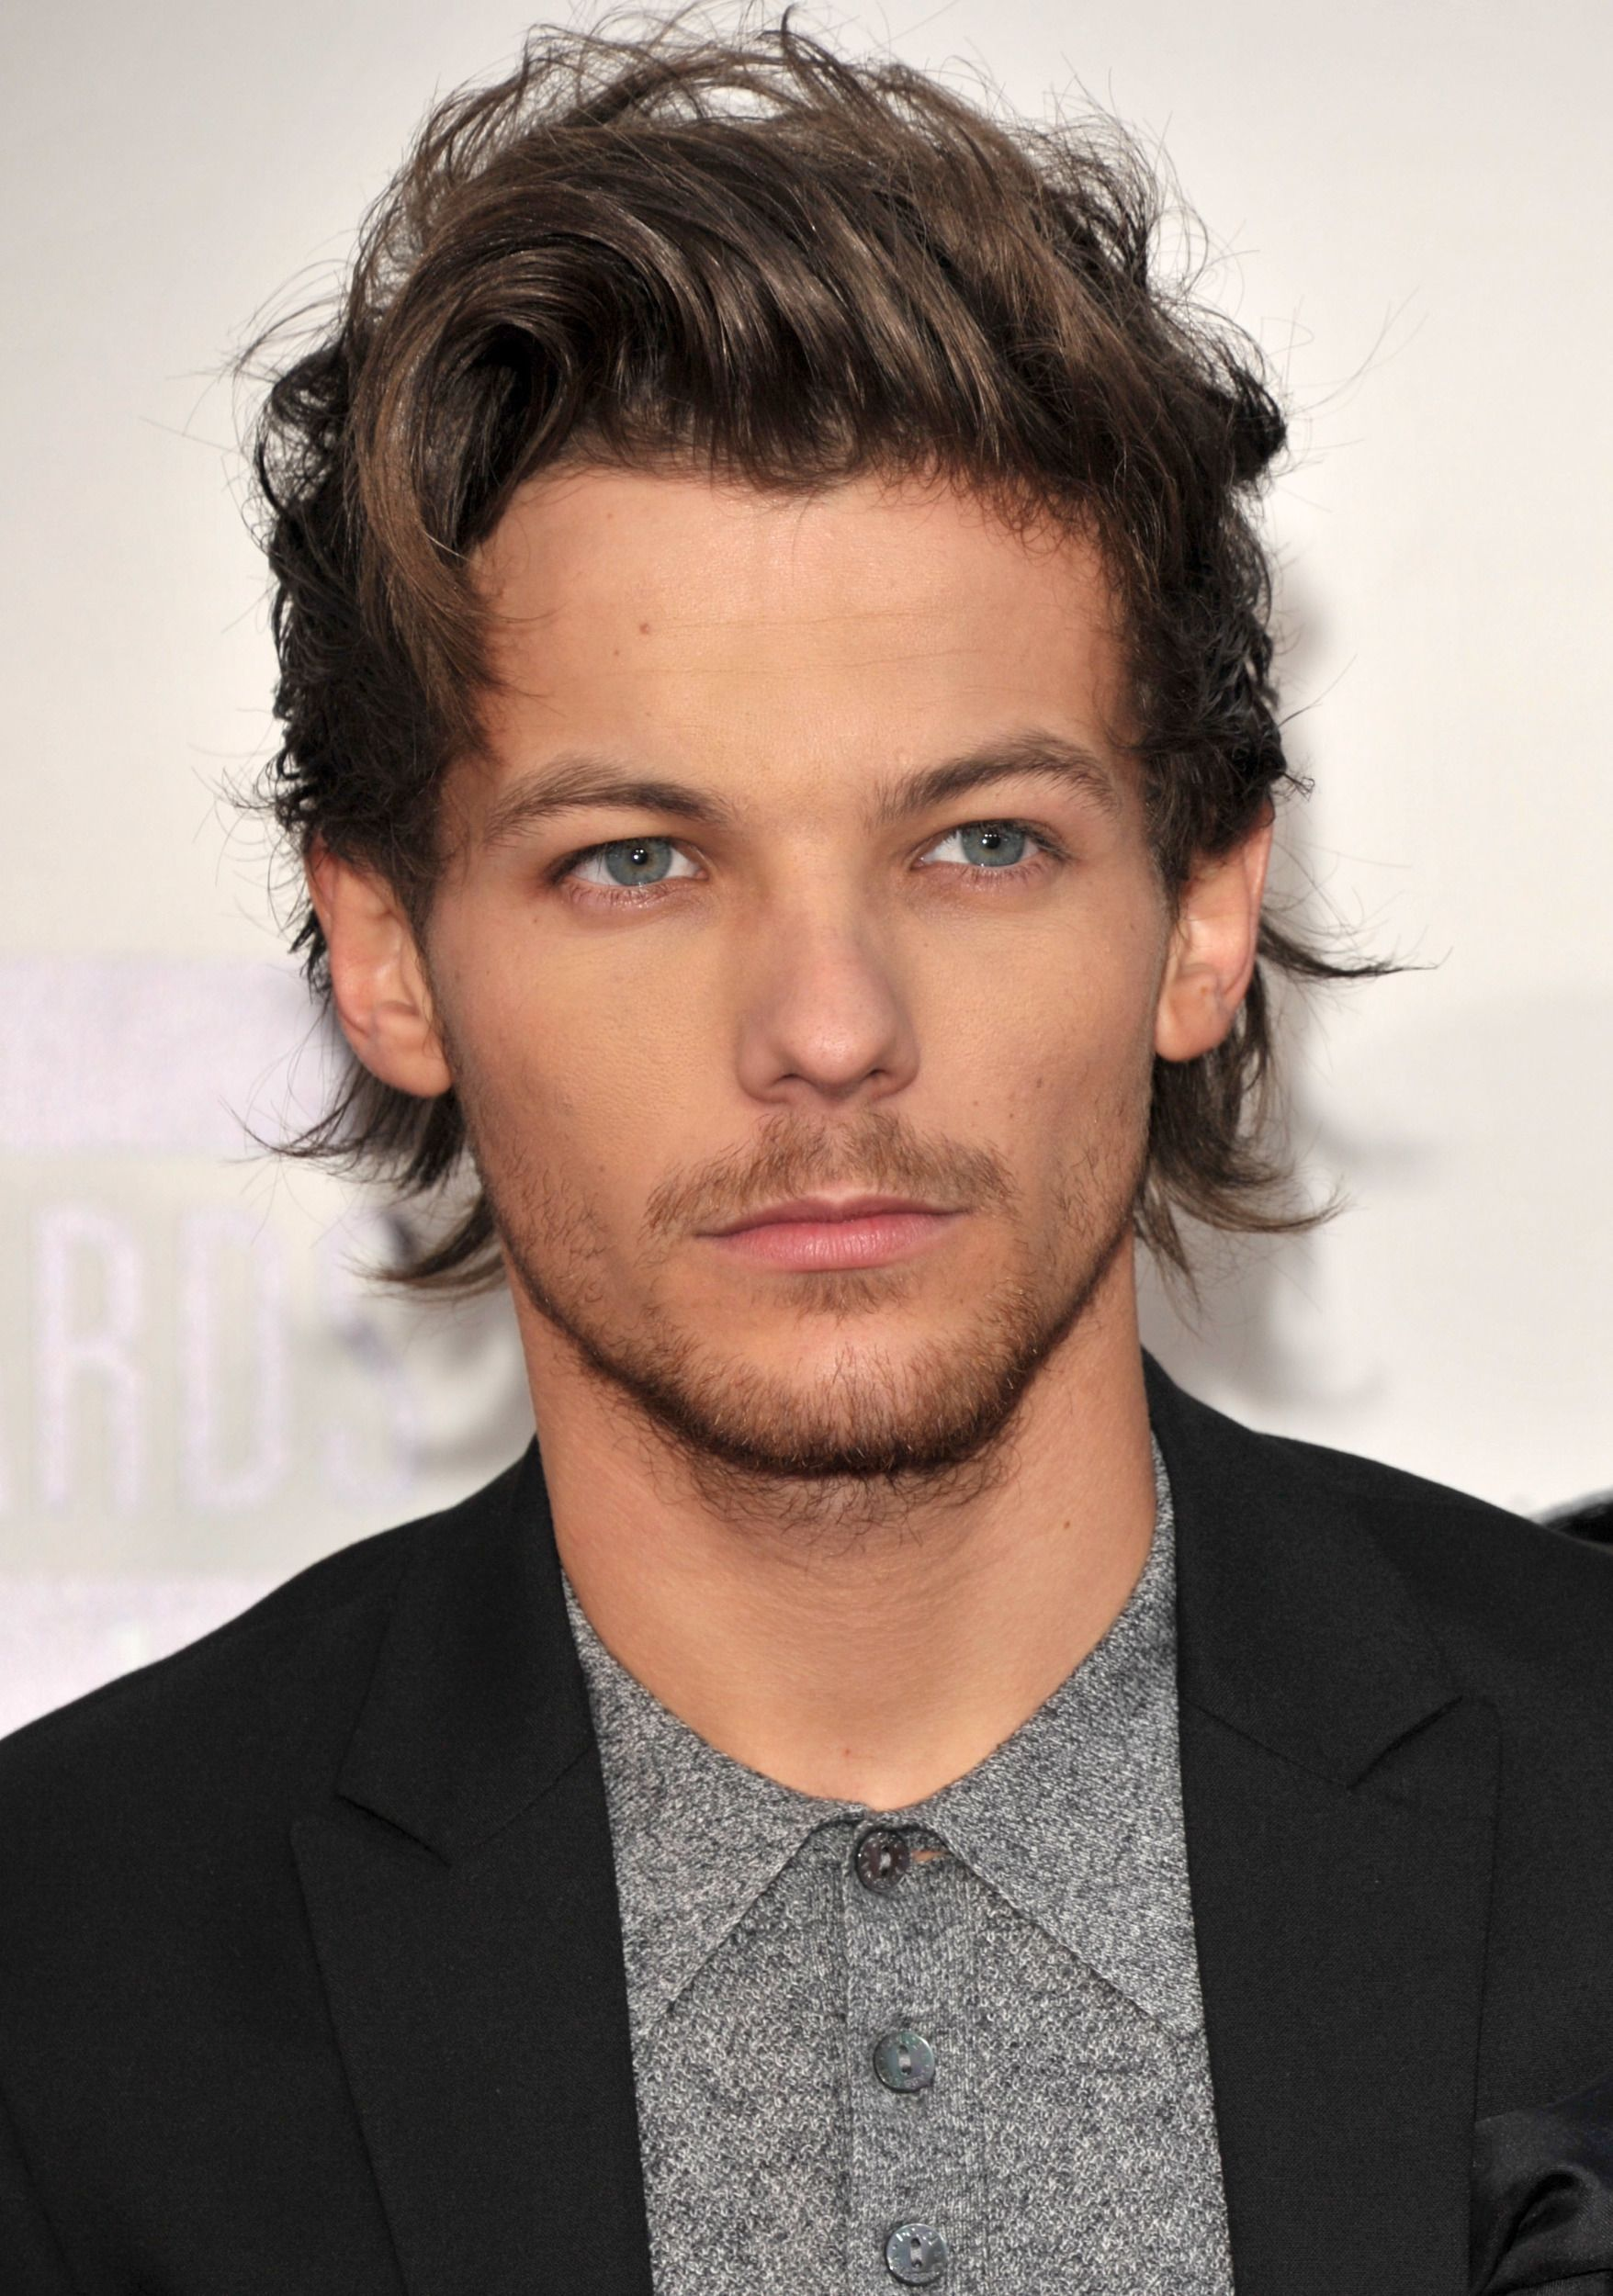 One Direction's Louis Tomlinson Calls Out Fan's Parents #onedirection2014 Louis Tomlinson has parted ways from his long-term girlfriend Eleanor Calder, just days after his bandmate Zayn Malik's relationship with Perrie Edwards was reportedly hanging in the balance. Description from tsquirrel.com. I searched for this on bing.com/images #onedirection2014 One Direction's Louis Tomlinson Calls Out Fan's Parents #onedirection2014 Louis Tomlinson has parted ways from his long-term girlfriend Eleanor C #onedirection2014